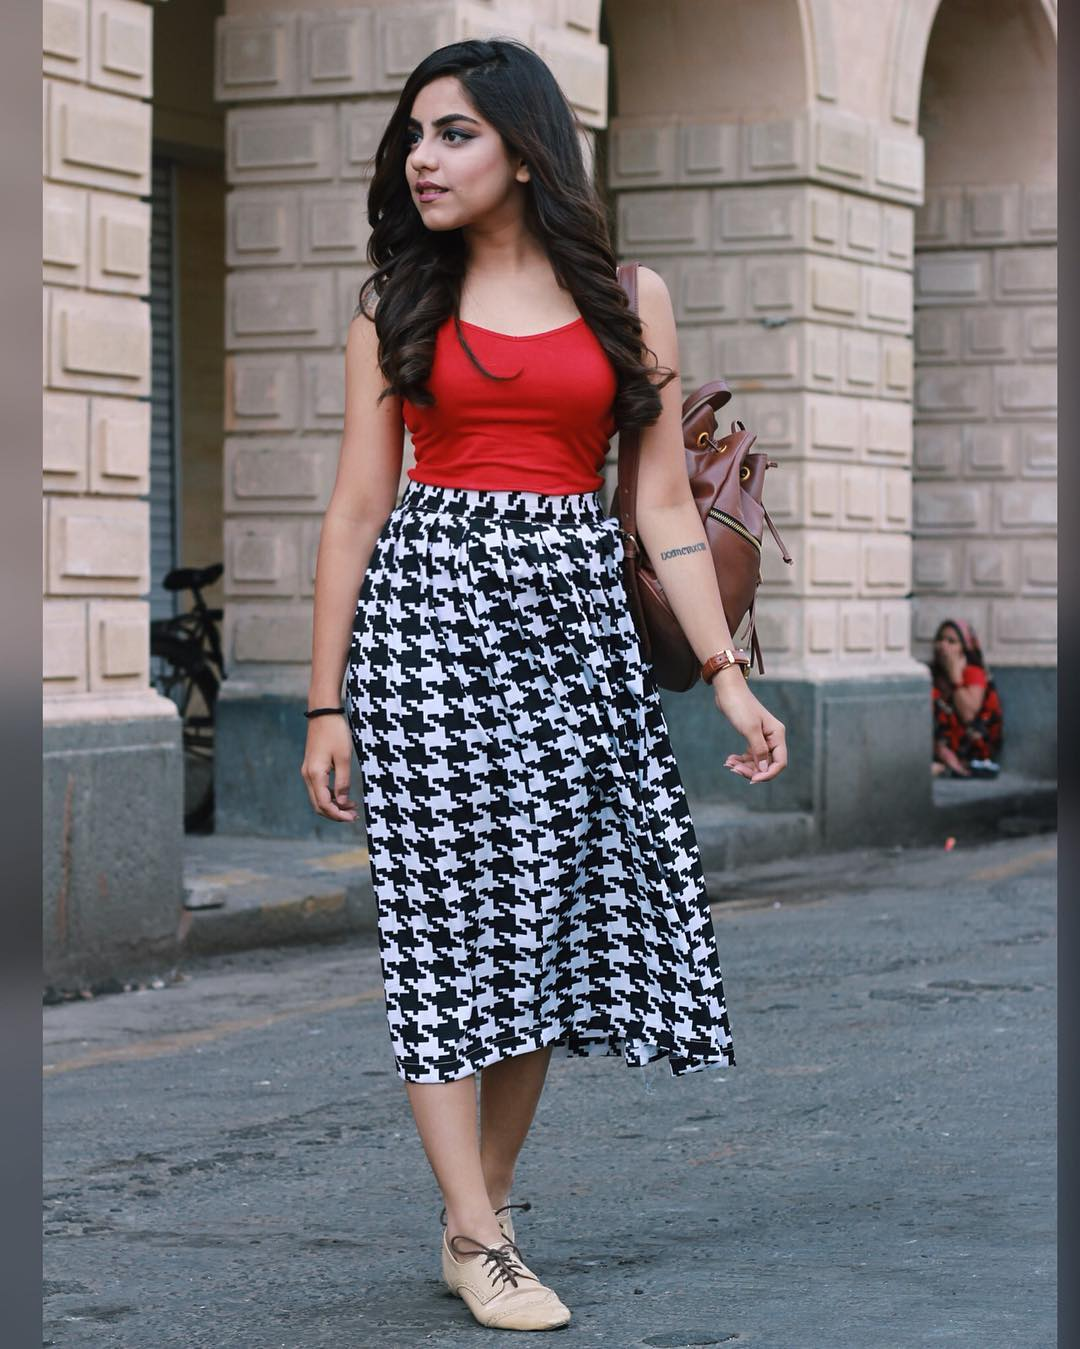 Dazzling Skirt With Red Top